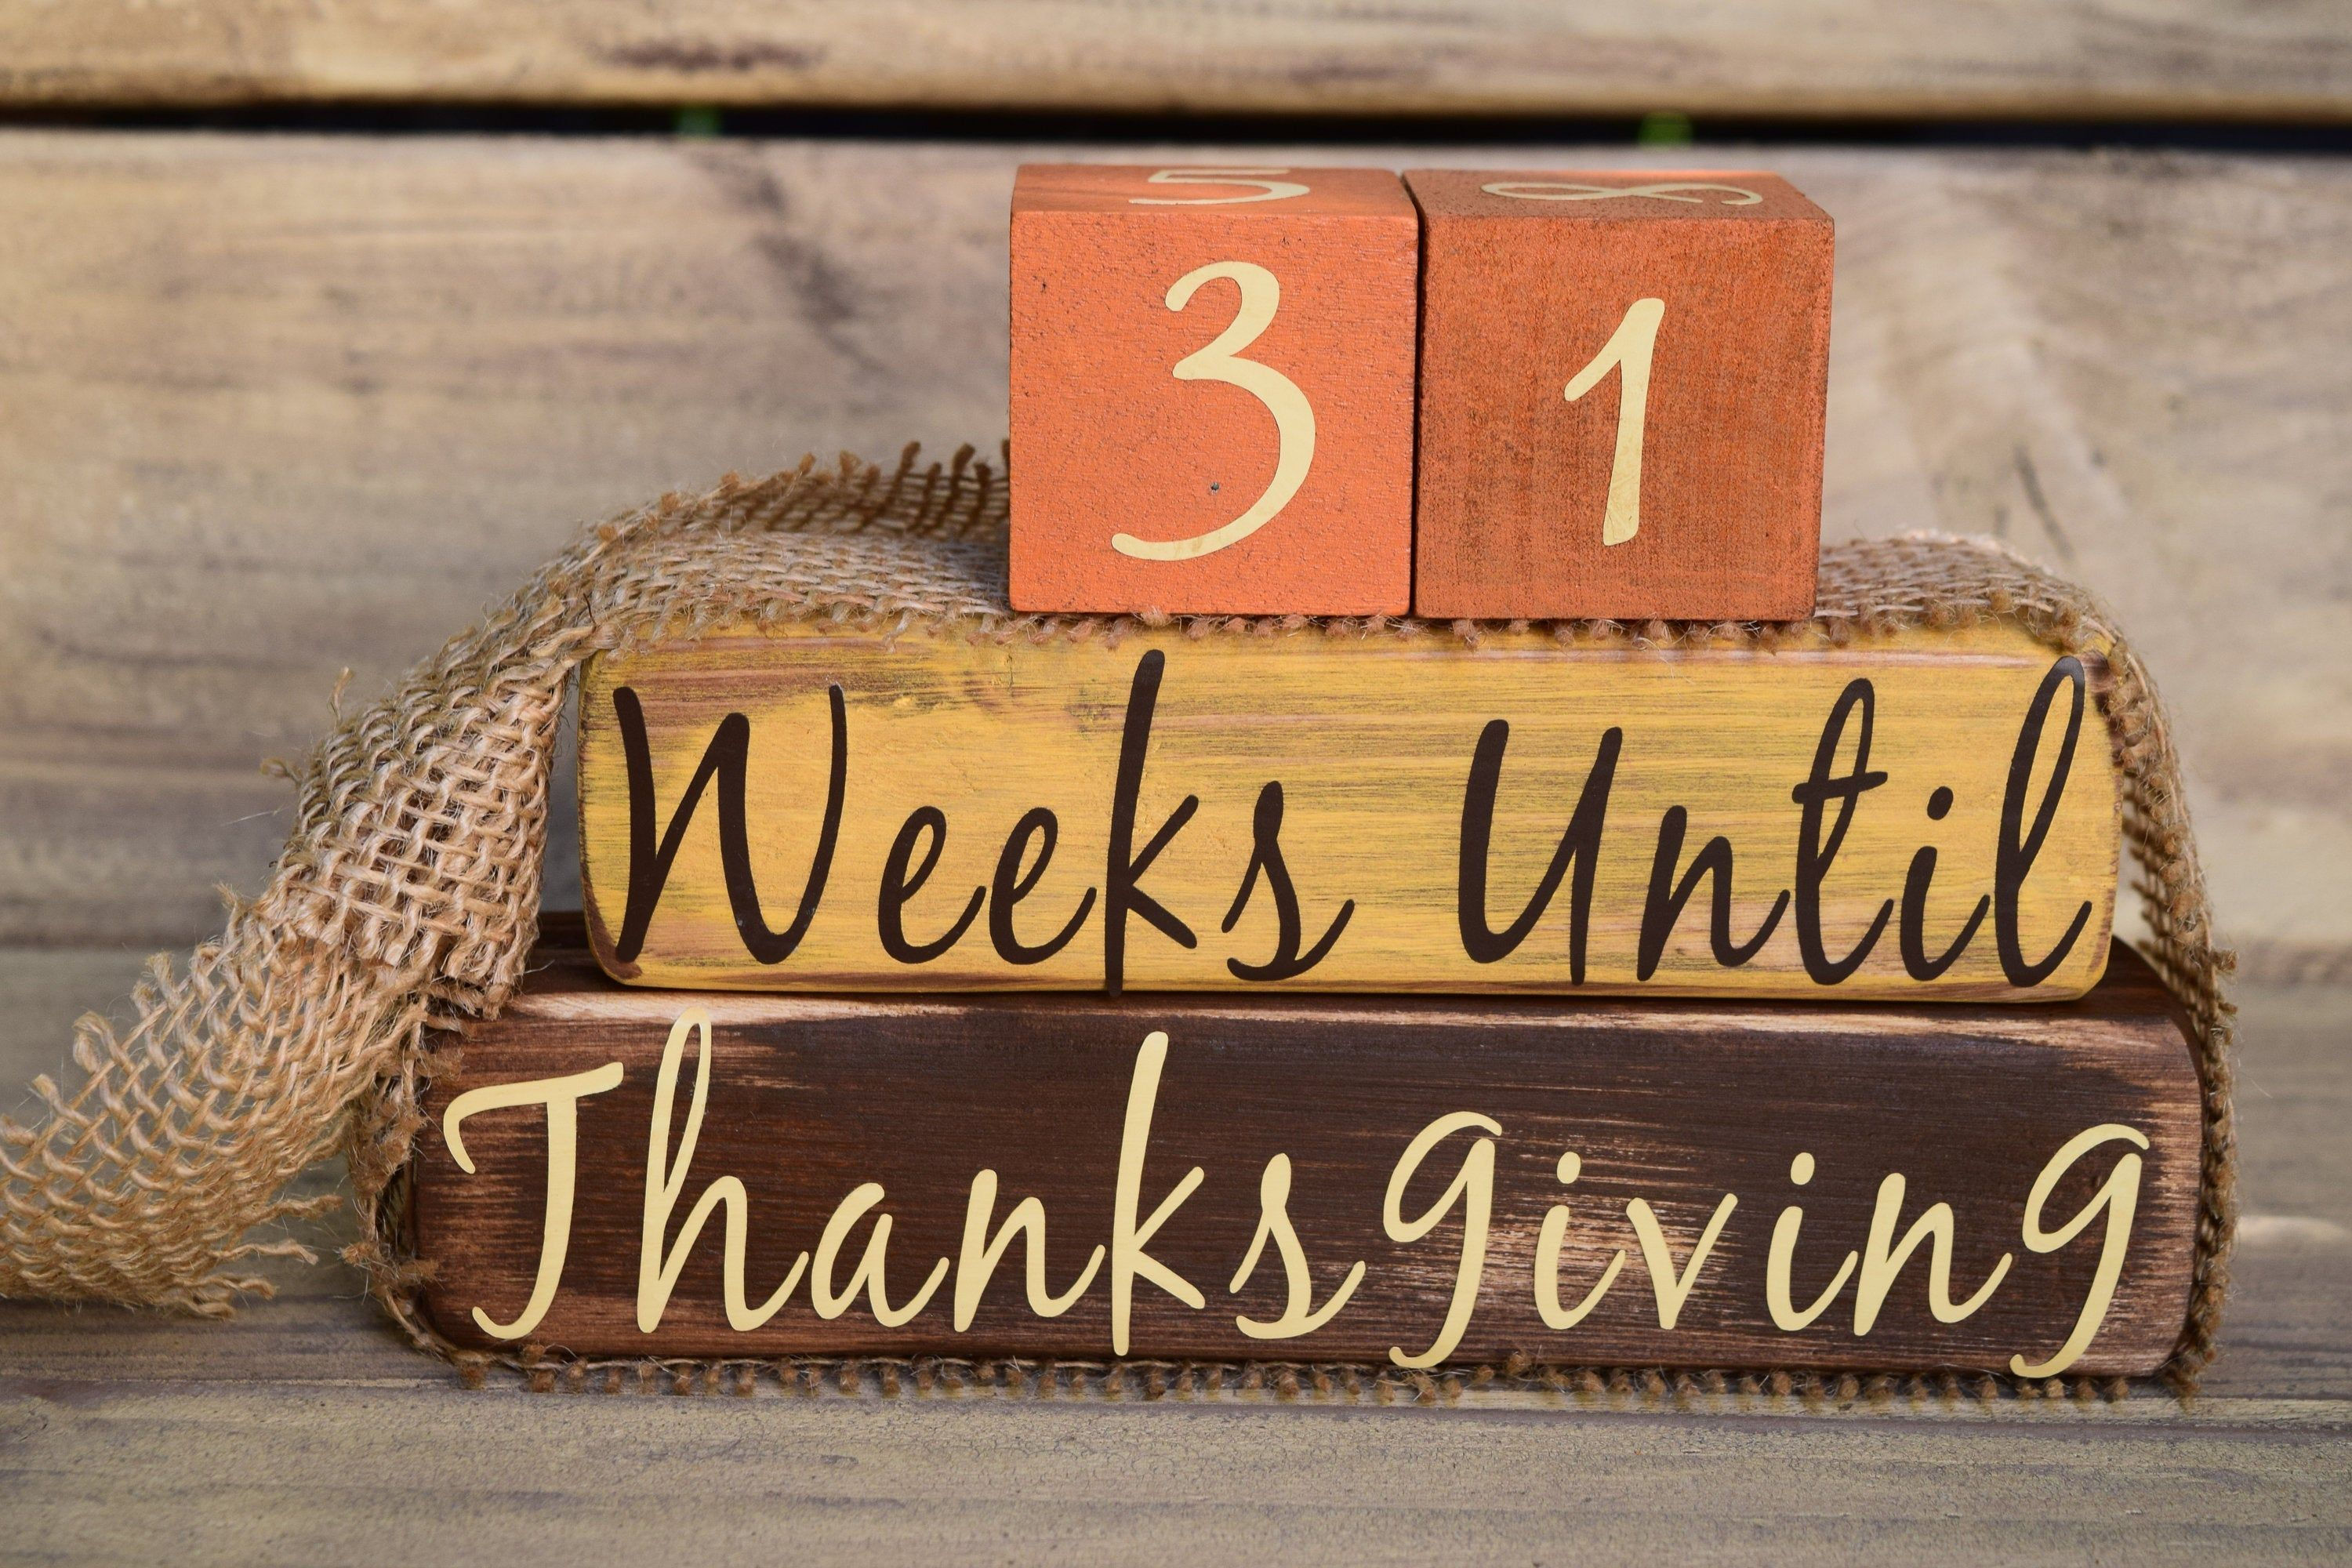 Vintage Thanksgiving Countdown Fall Colors Yellow Orange Etsy In 2020 Vintage Thanksgiving Thanksgiving Countdown Vintage Christmas